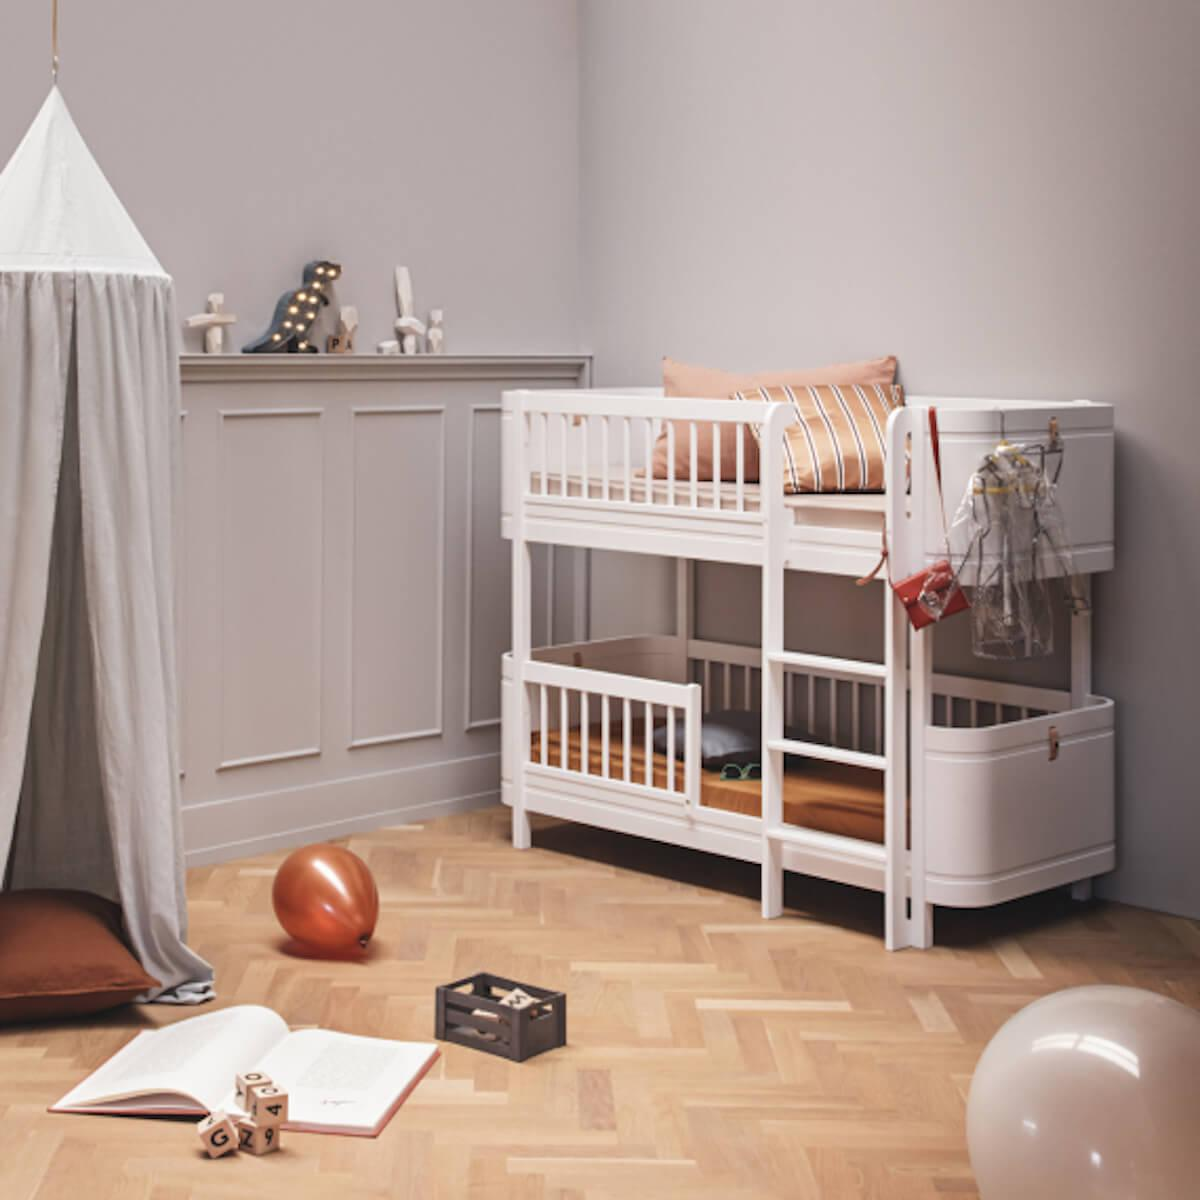 Litera 68x162cm WOOD MINI+ Oliver Furniture blanco